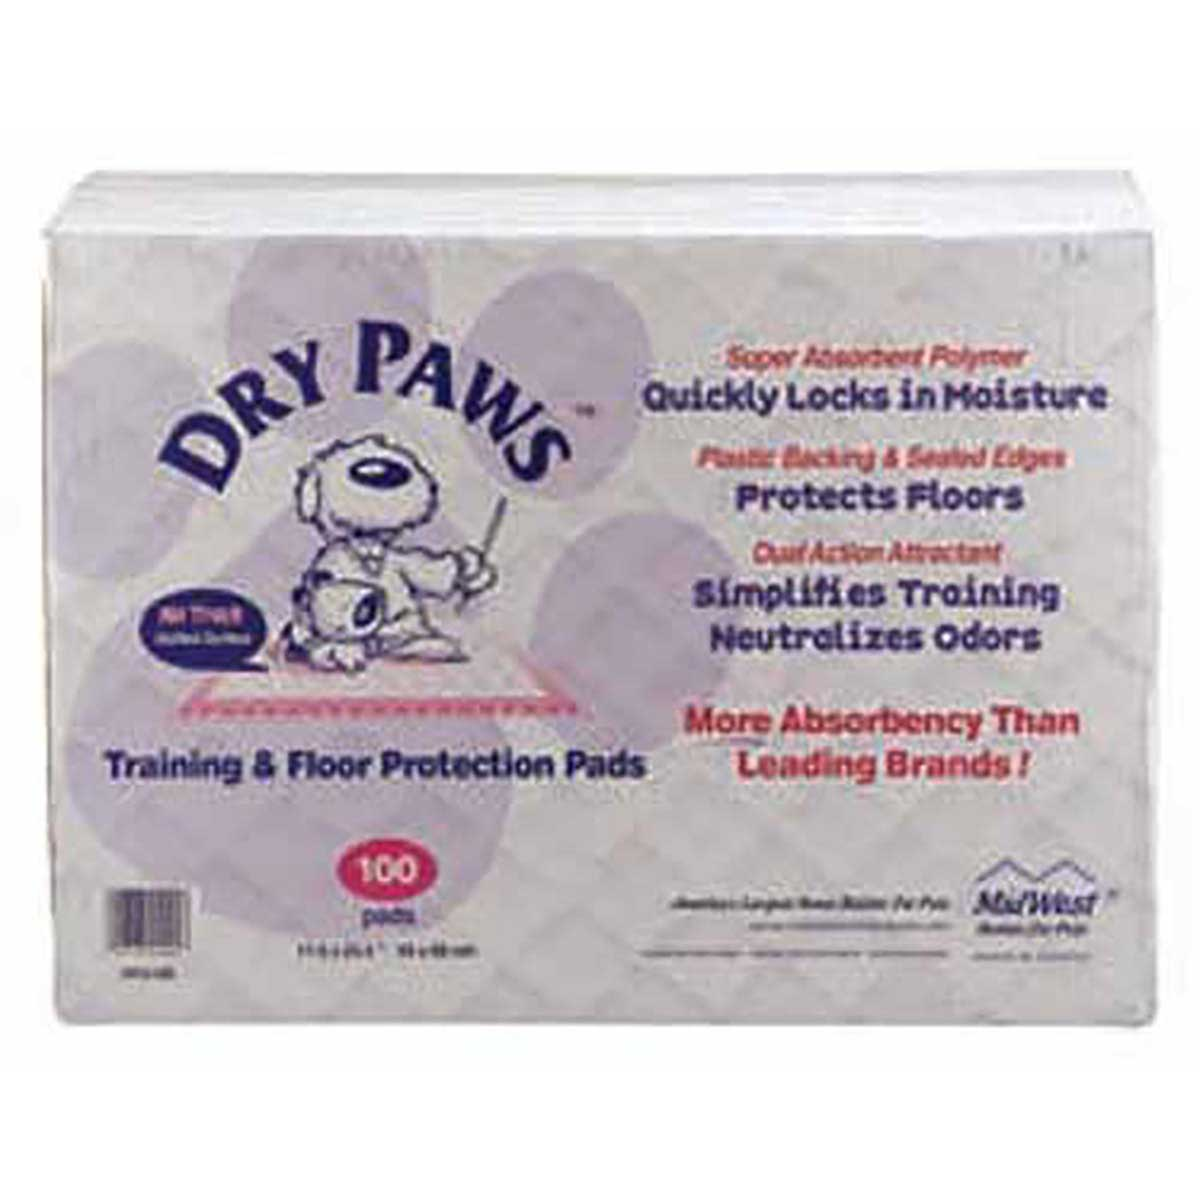 300 Pack Dry Paws Puppy Training Pads - 23 inches by 24 inches